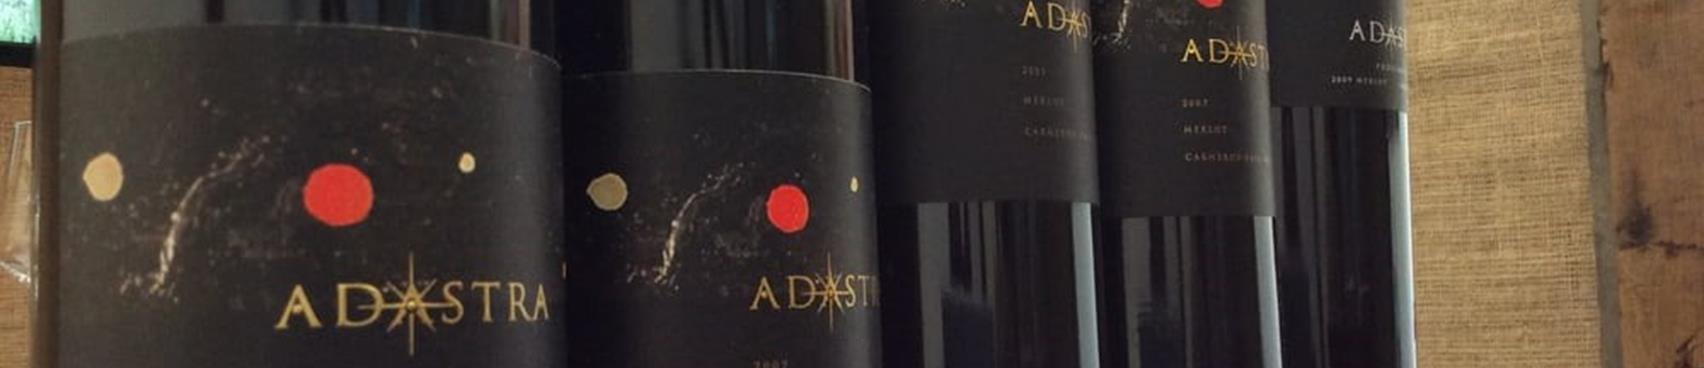 A image of Adastra Wines